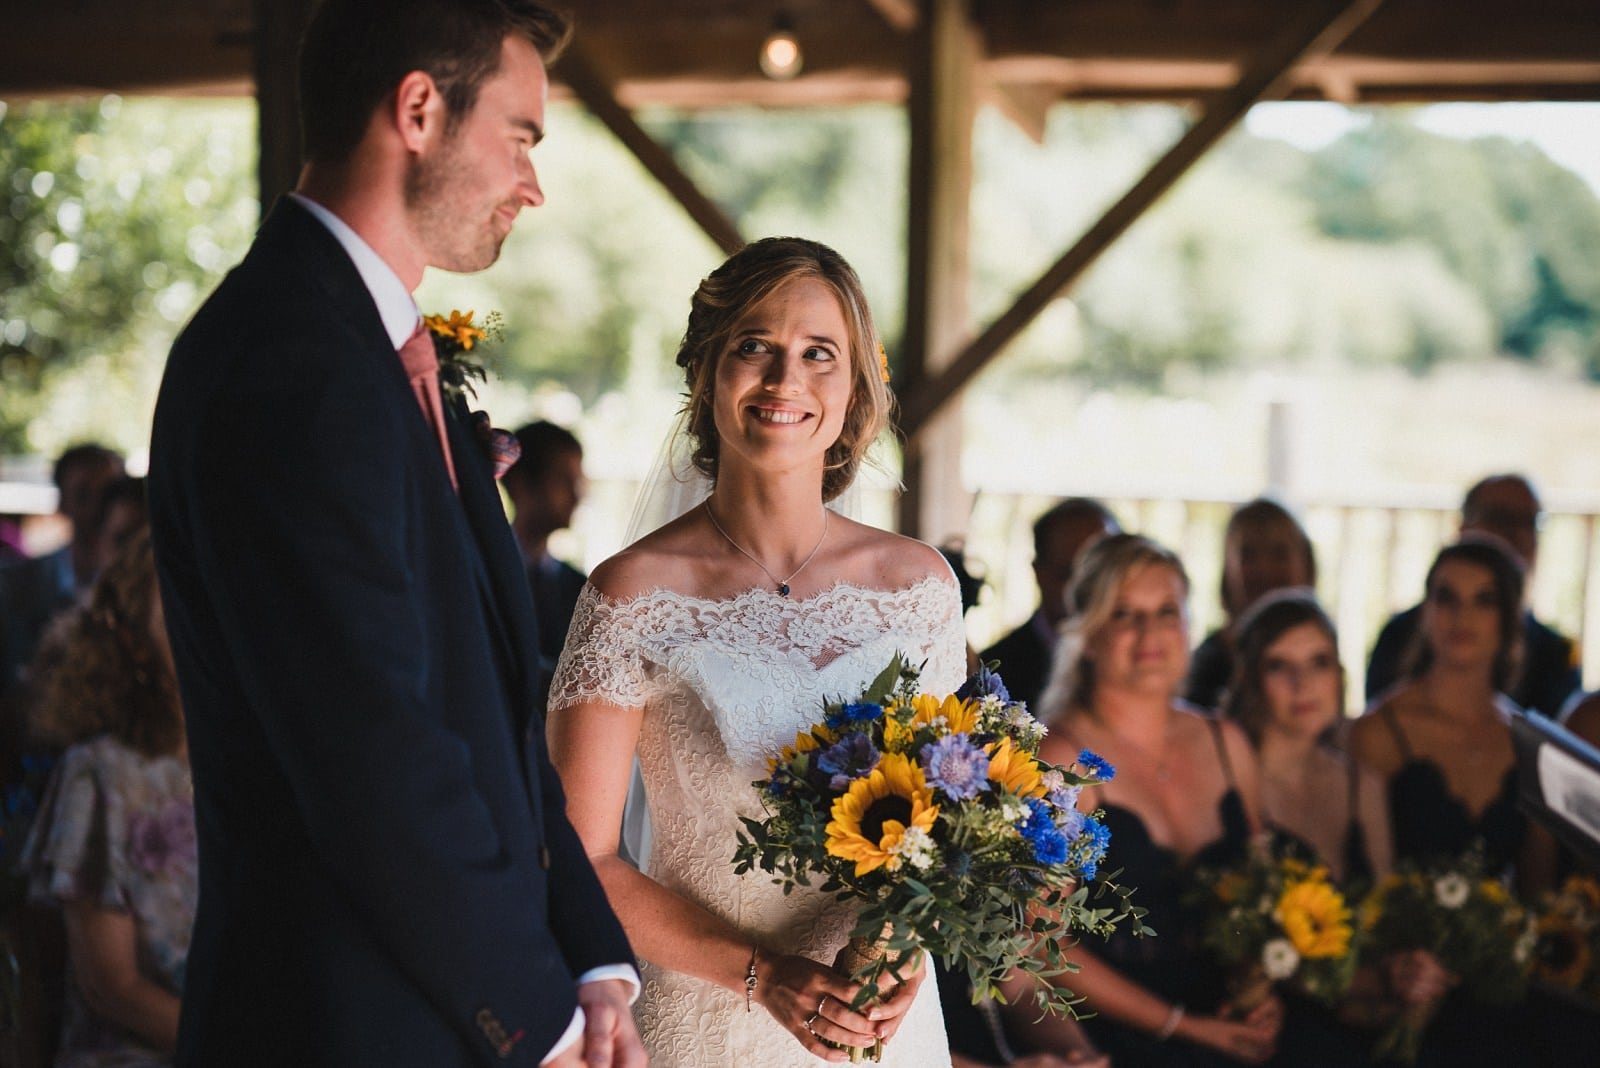 Bride looking lovingly at her groom during their wedding ceremony at Nancarrow Farm